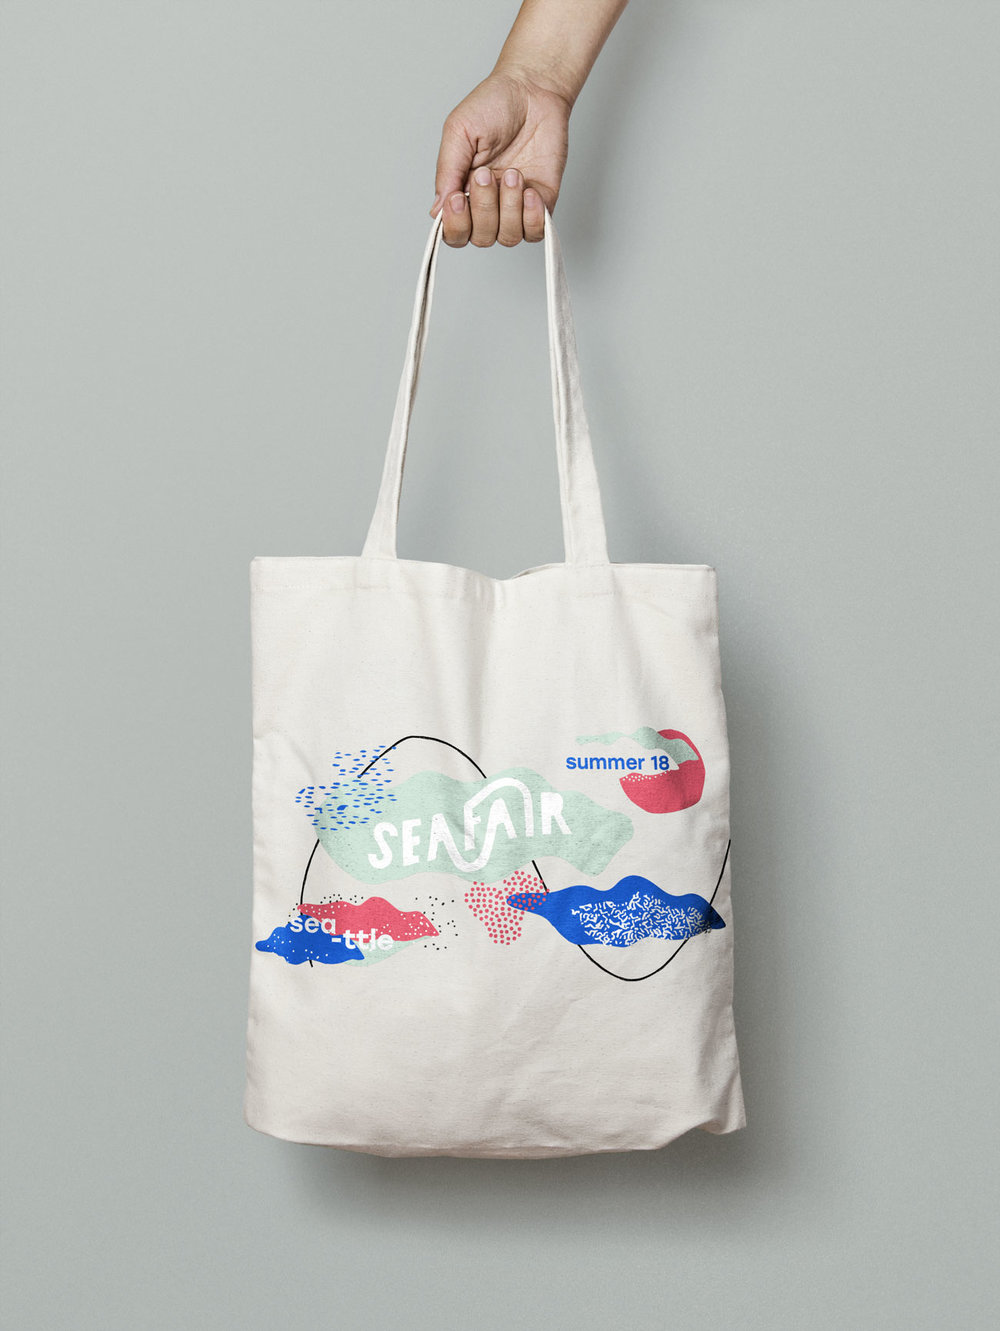 searfair-tote3.jpg